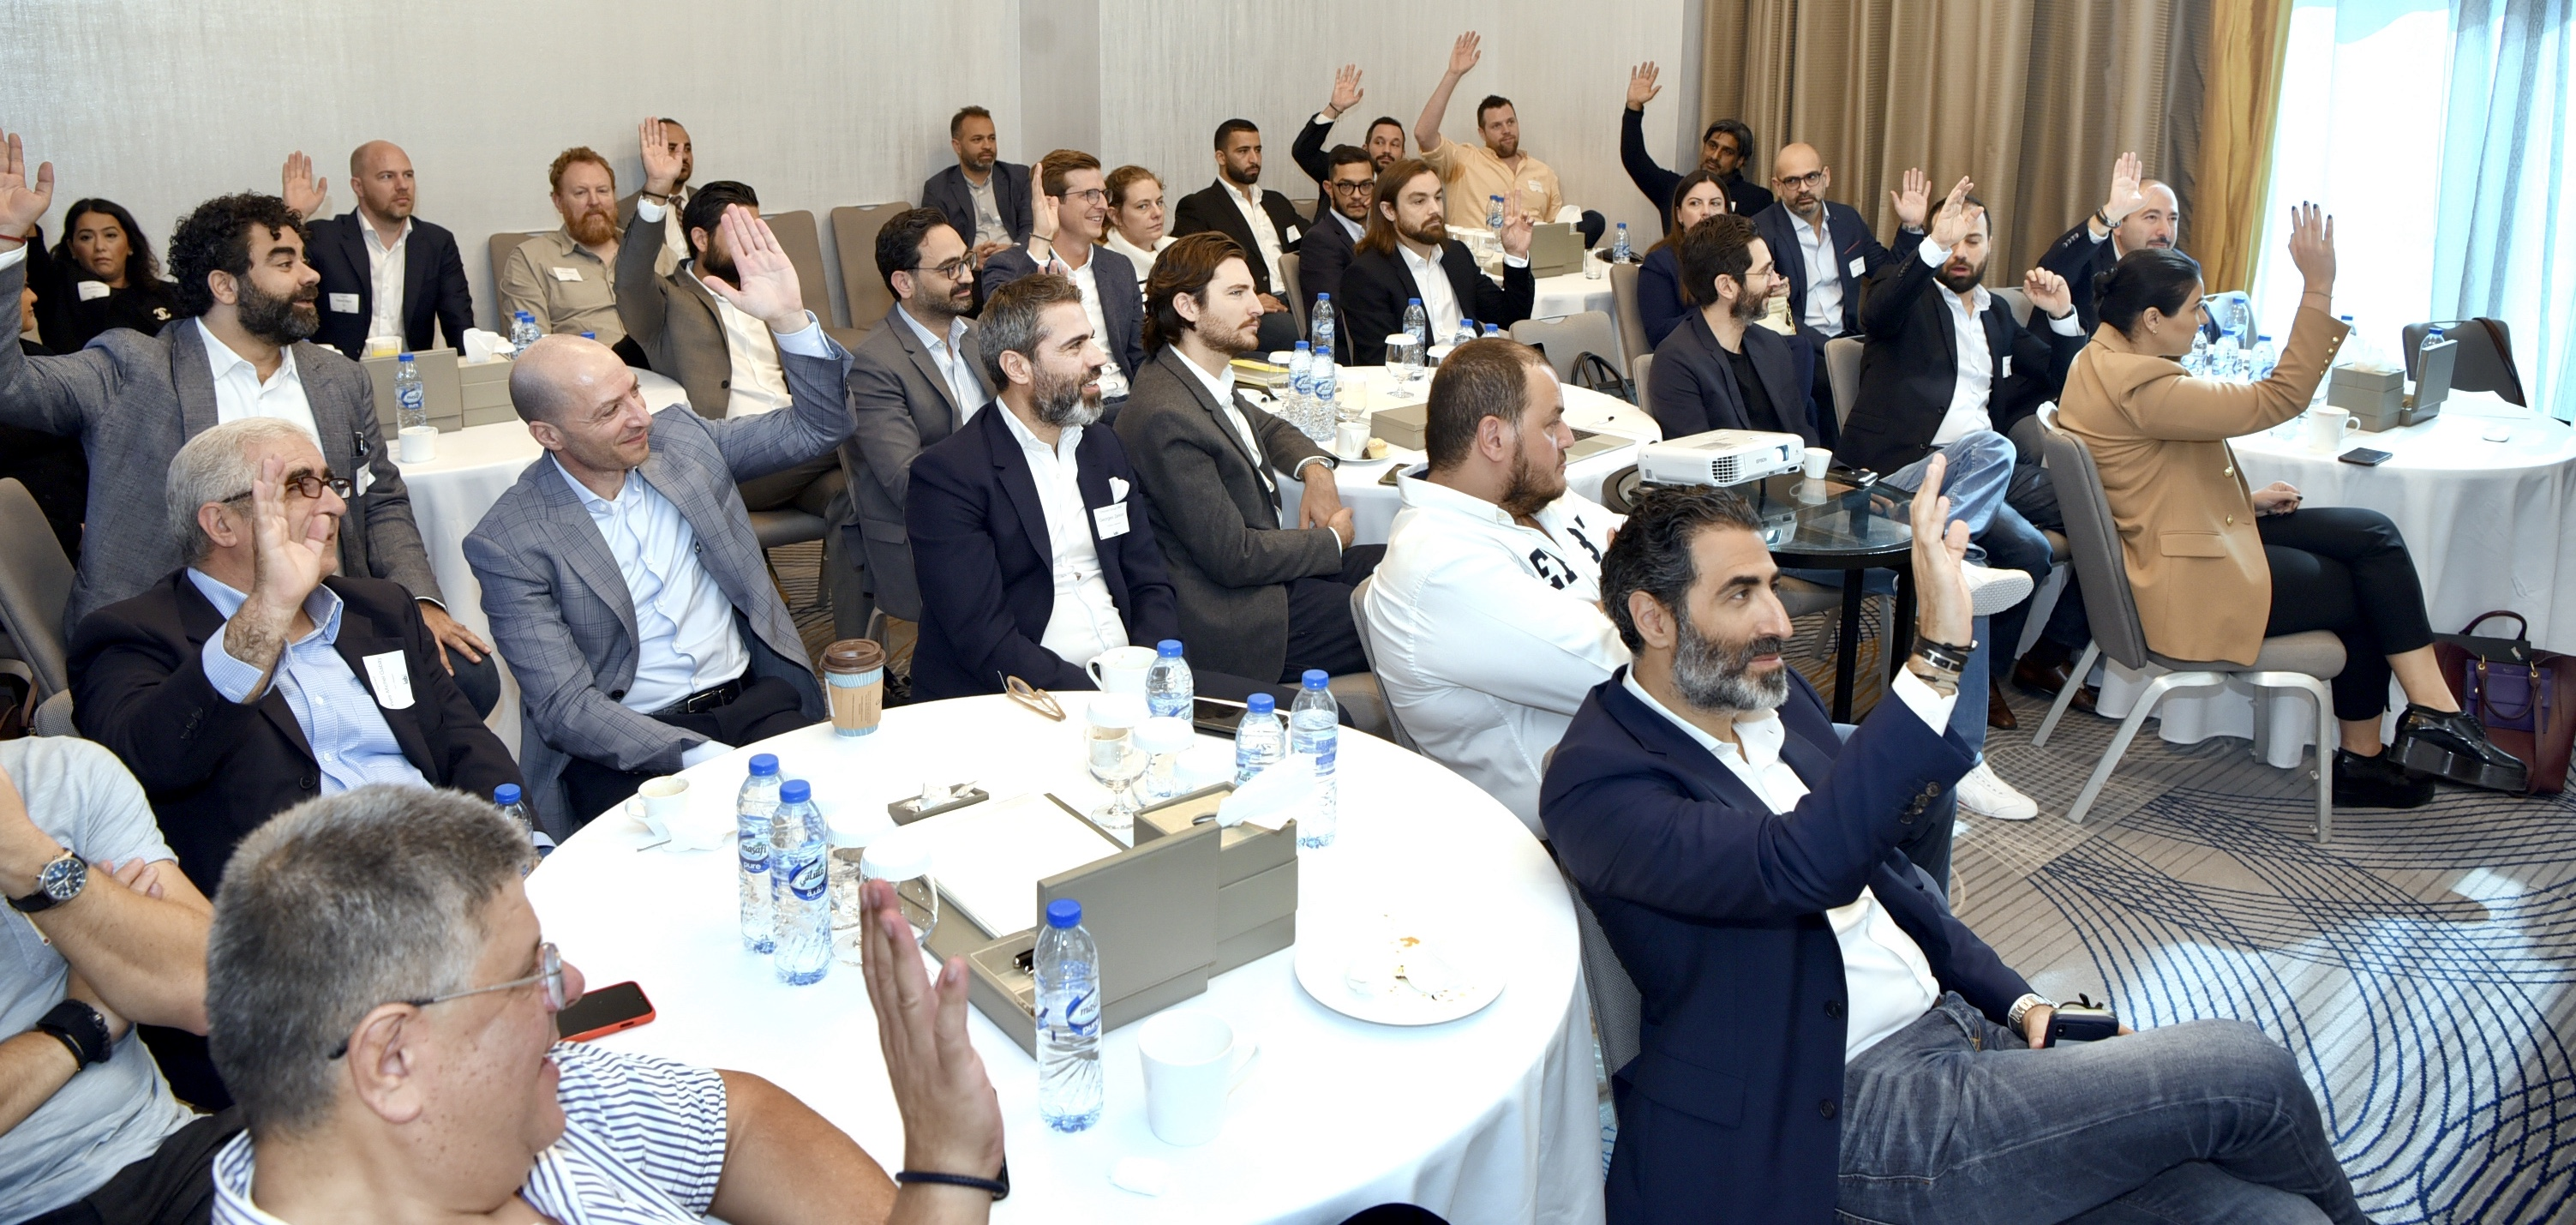 iab-urges-industry-wide-participation-in-digital-initiative